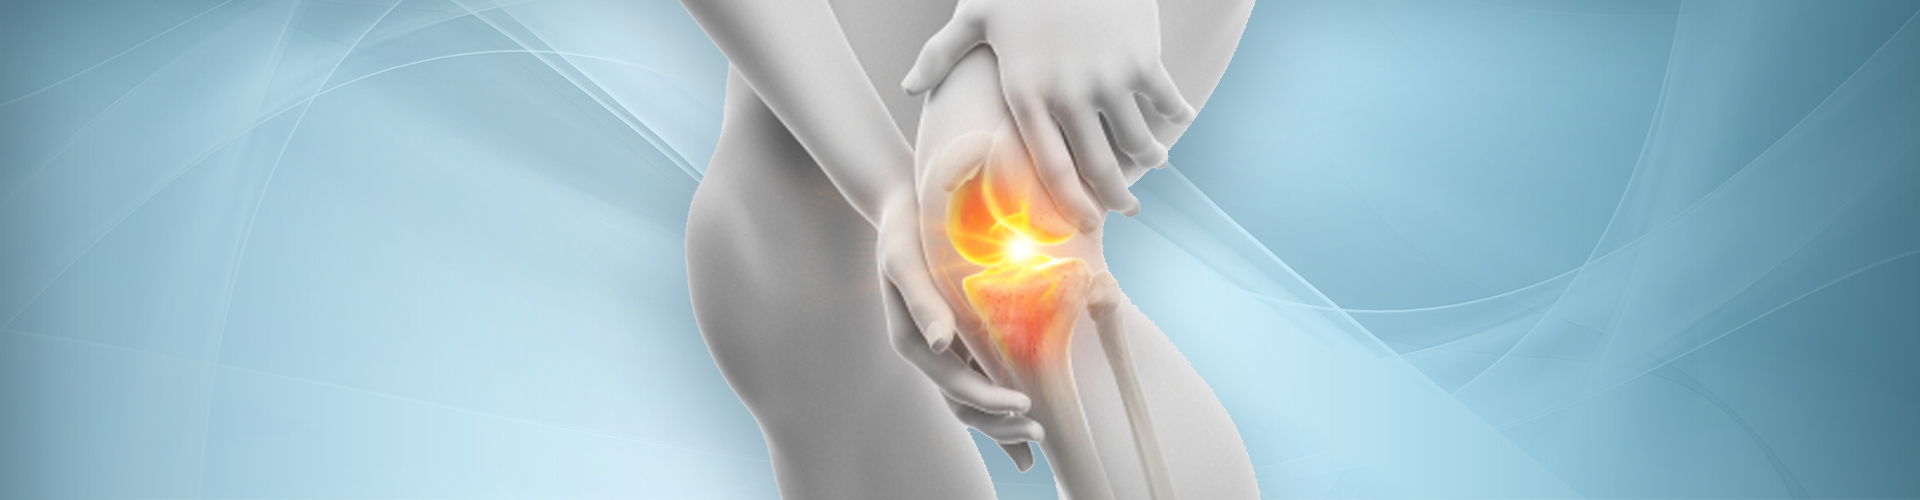 "If you are constantly bothered by knee pain, you are probably asking yourself ""How do I find a great knee doctor near me?""Our pain specialists are here to help!"